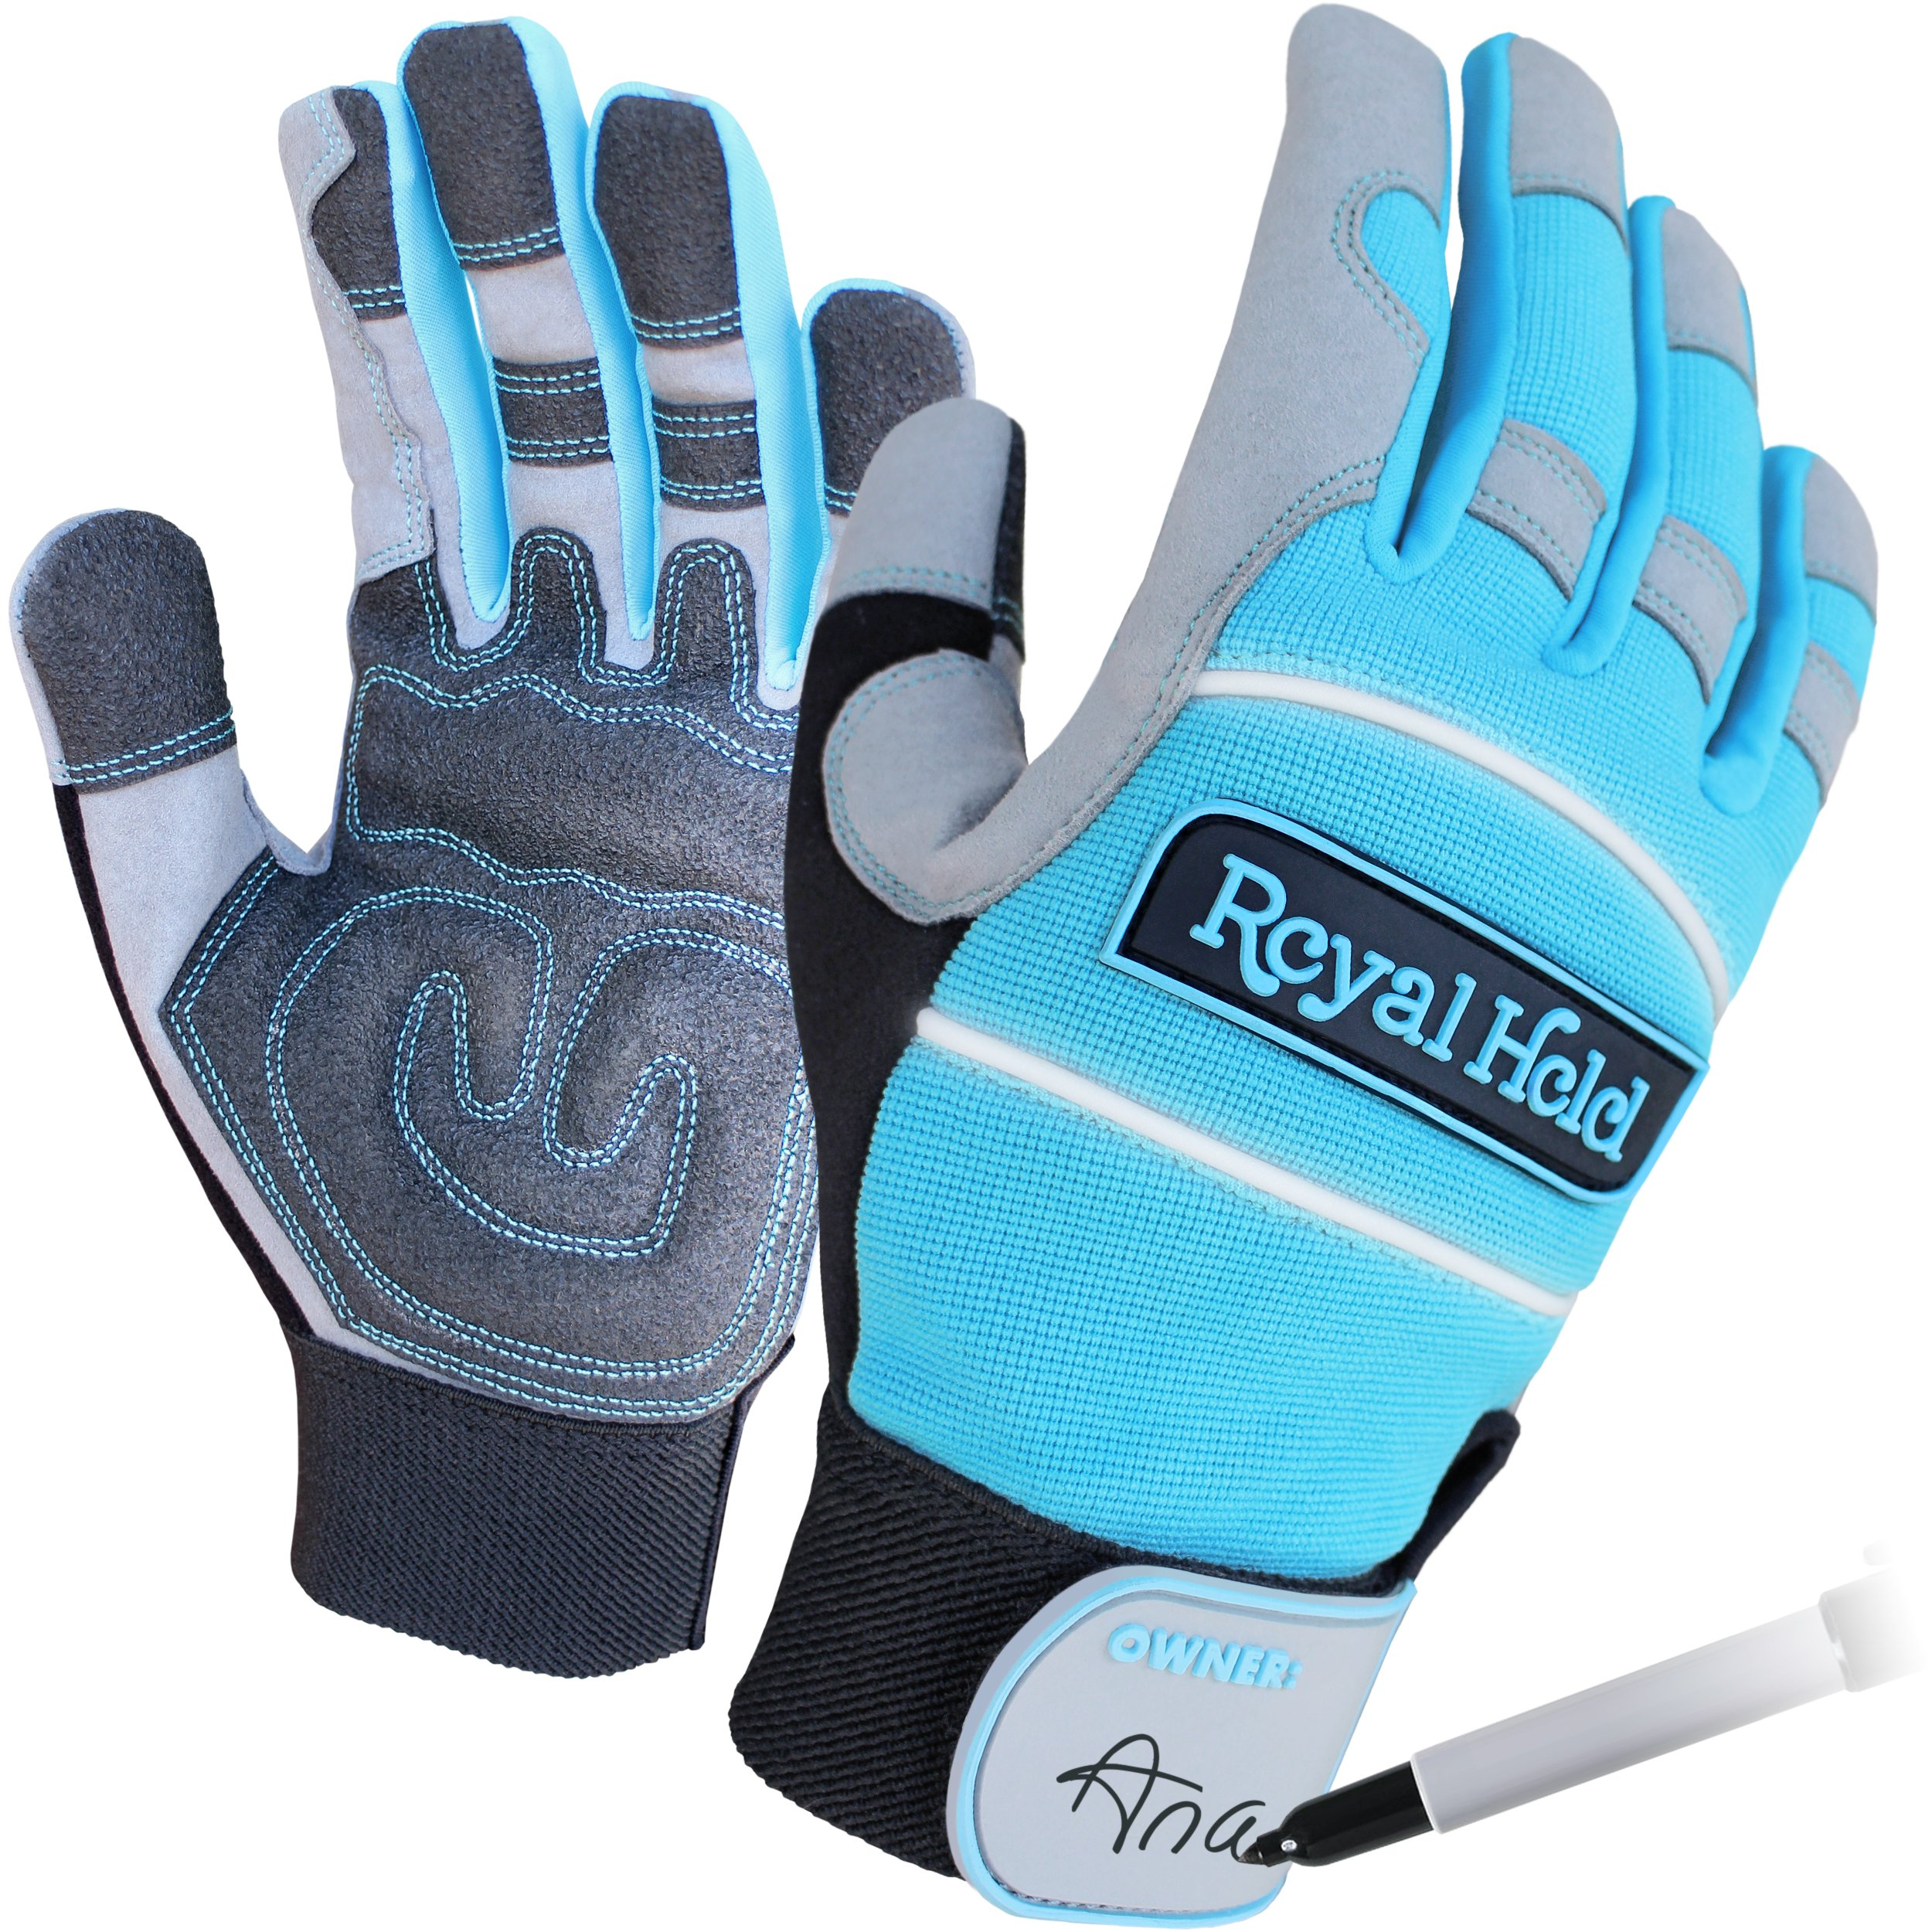 Extra Large Womens Gardening / Yard / Work Gloves by Royal Hold - 4 Sizes - Focused on Support and Protection. Gardening Gloves Women Will Find Comfortable. Teal / Silver / Black Garden Gloves.